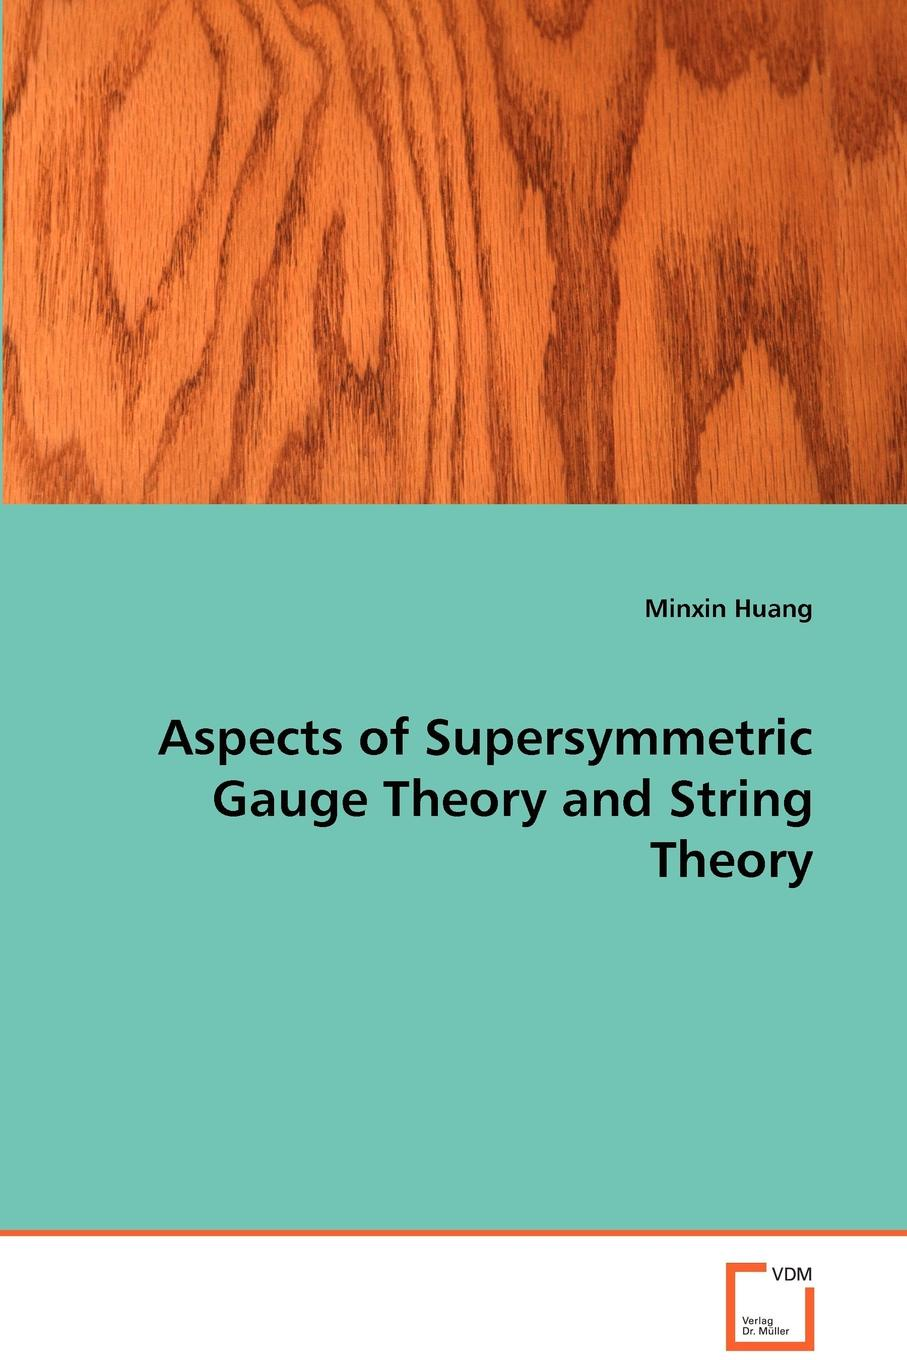 Minxin Huang Aspects of Supersymmetric Gauge Theory and String Theory джинсы befree befree mp002xw023lc